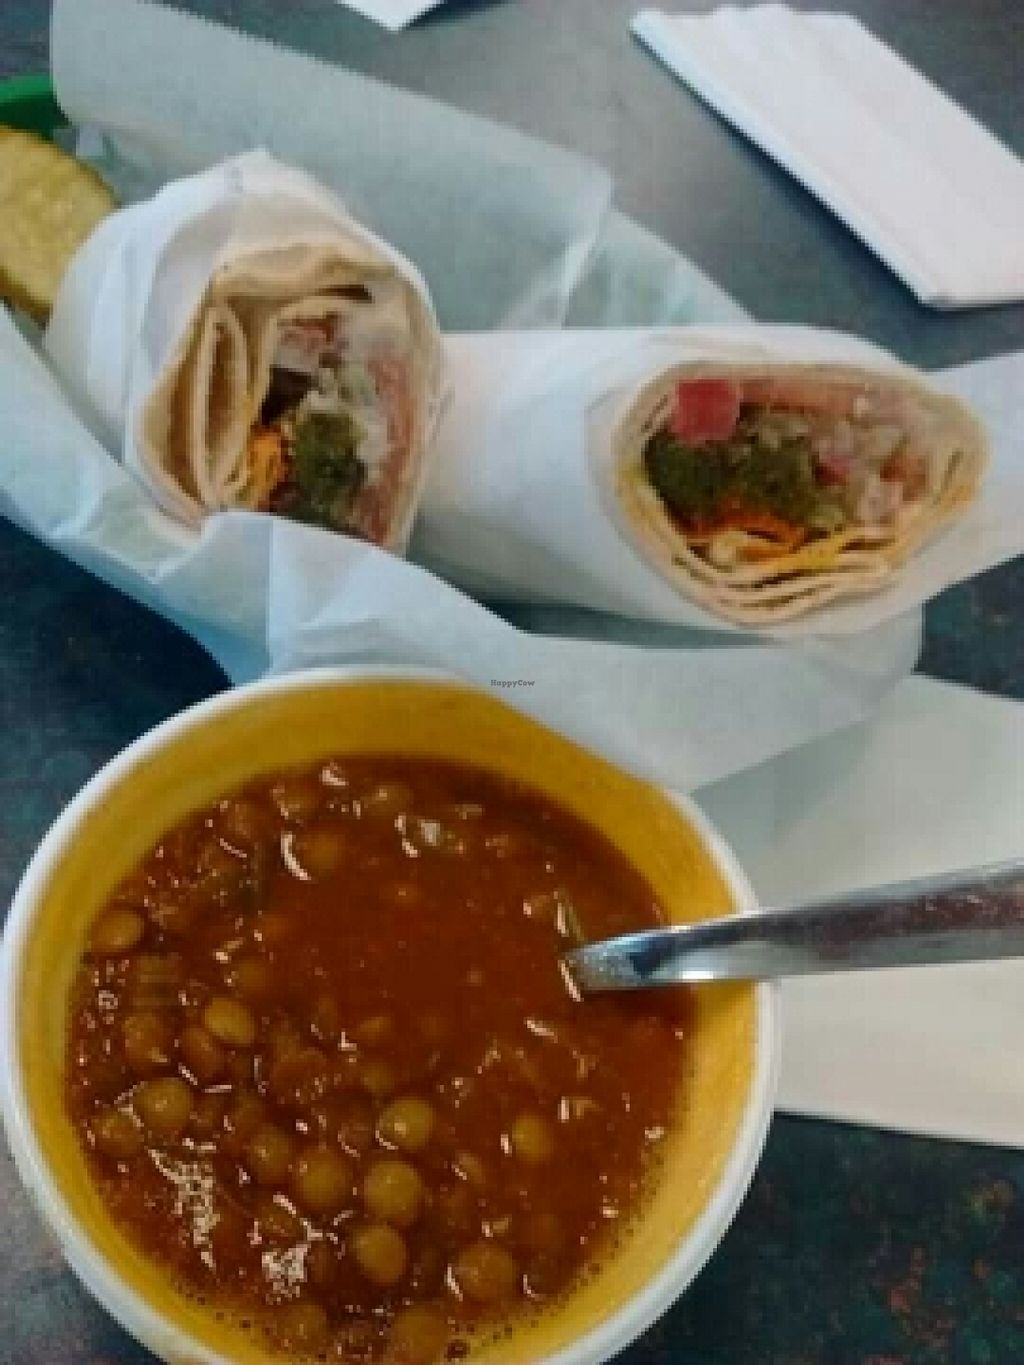 """Photo of Bread and Butter Deli  by <a href=""""/members/profile/Lgonz48514"""">Lgonz48514</a> <br/>Falafel wrap with Lentil soup all vegan <br/> March 3, 2016  - <a href='/contact/abuse/image/70139/138676'>Report</a>"""